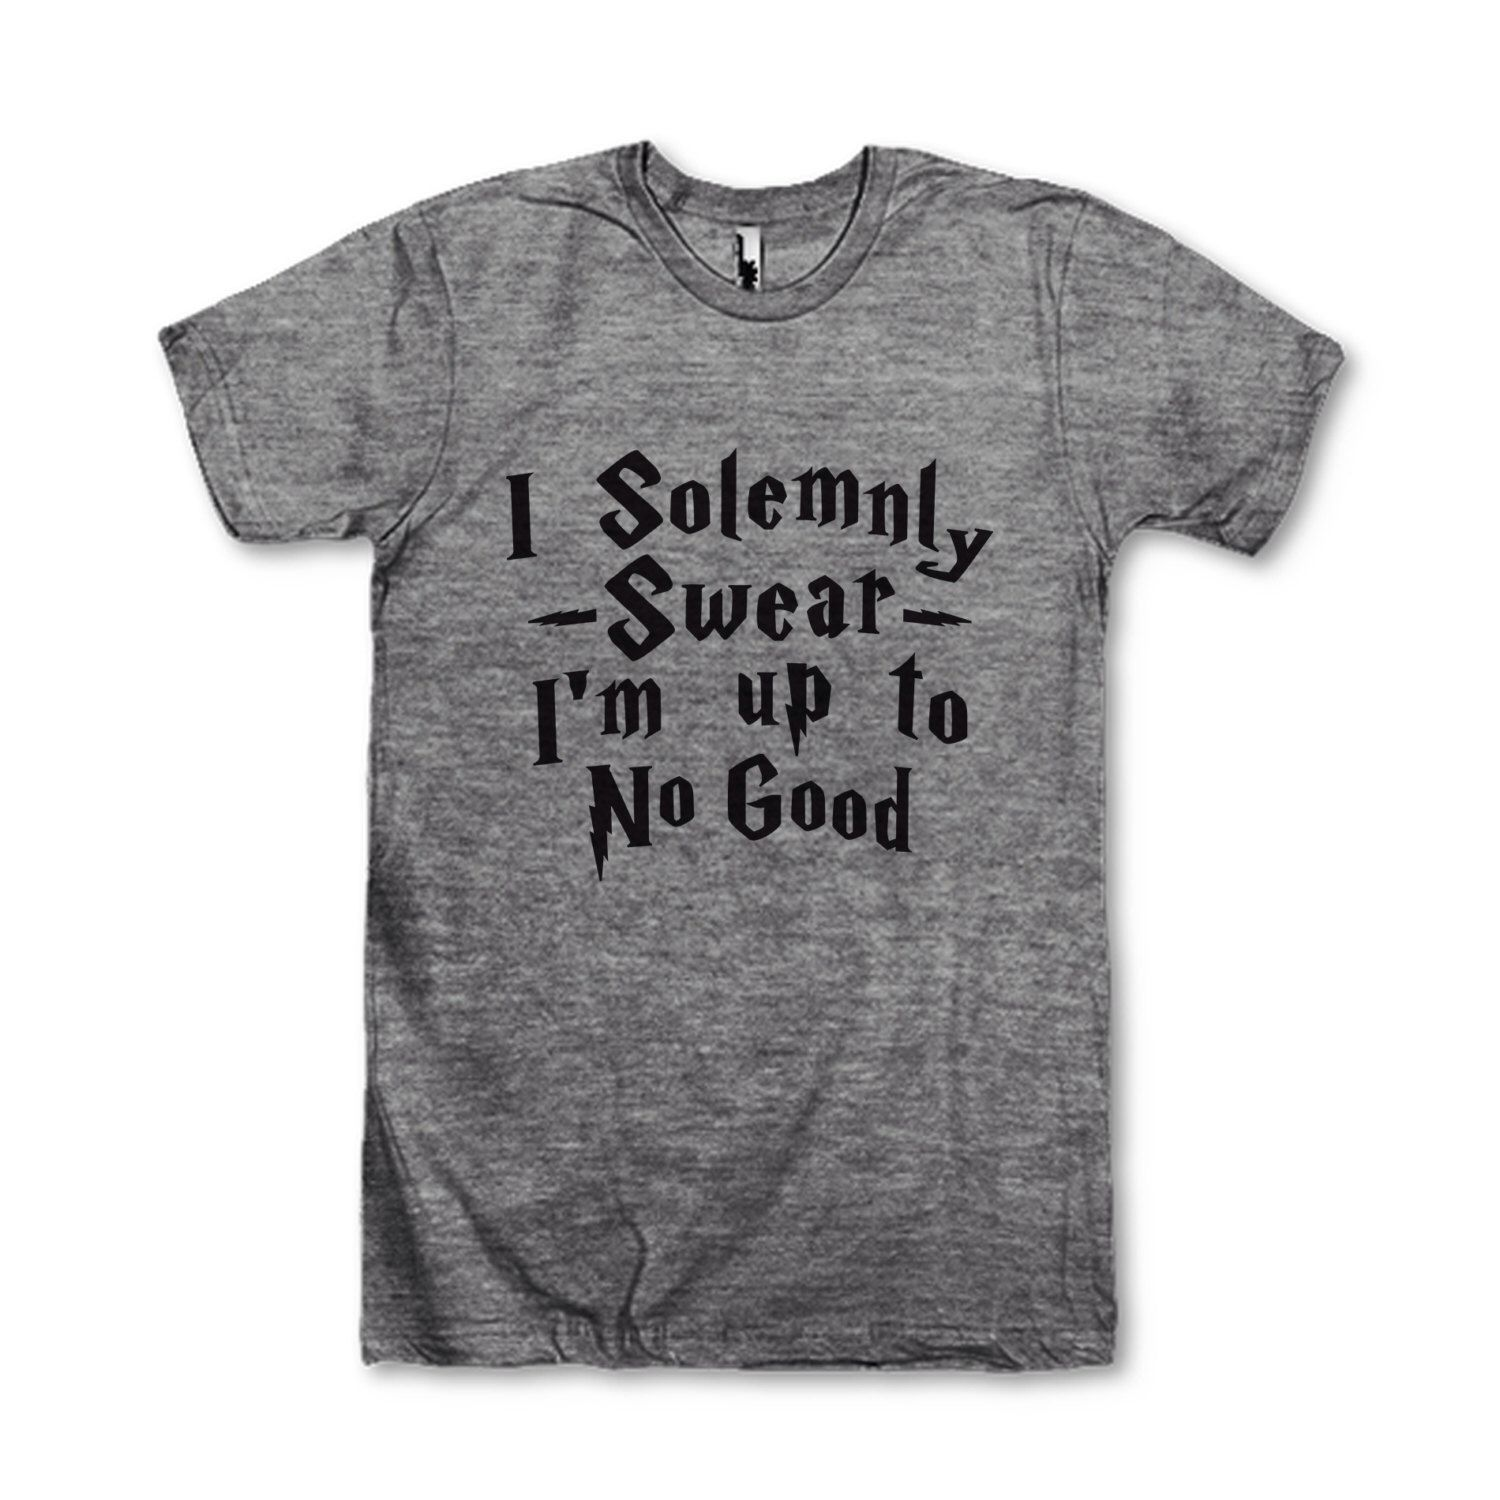 I Solemnly Swear I'm Up To No Good by AwesomeBestFriendsTs on Etsy https://www.etsy.com/listing/204840486/i-solemnly-swear-im-up-to-no-good